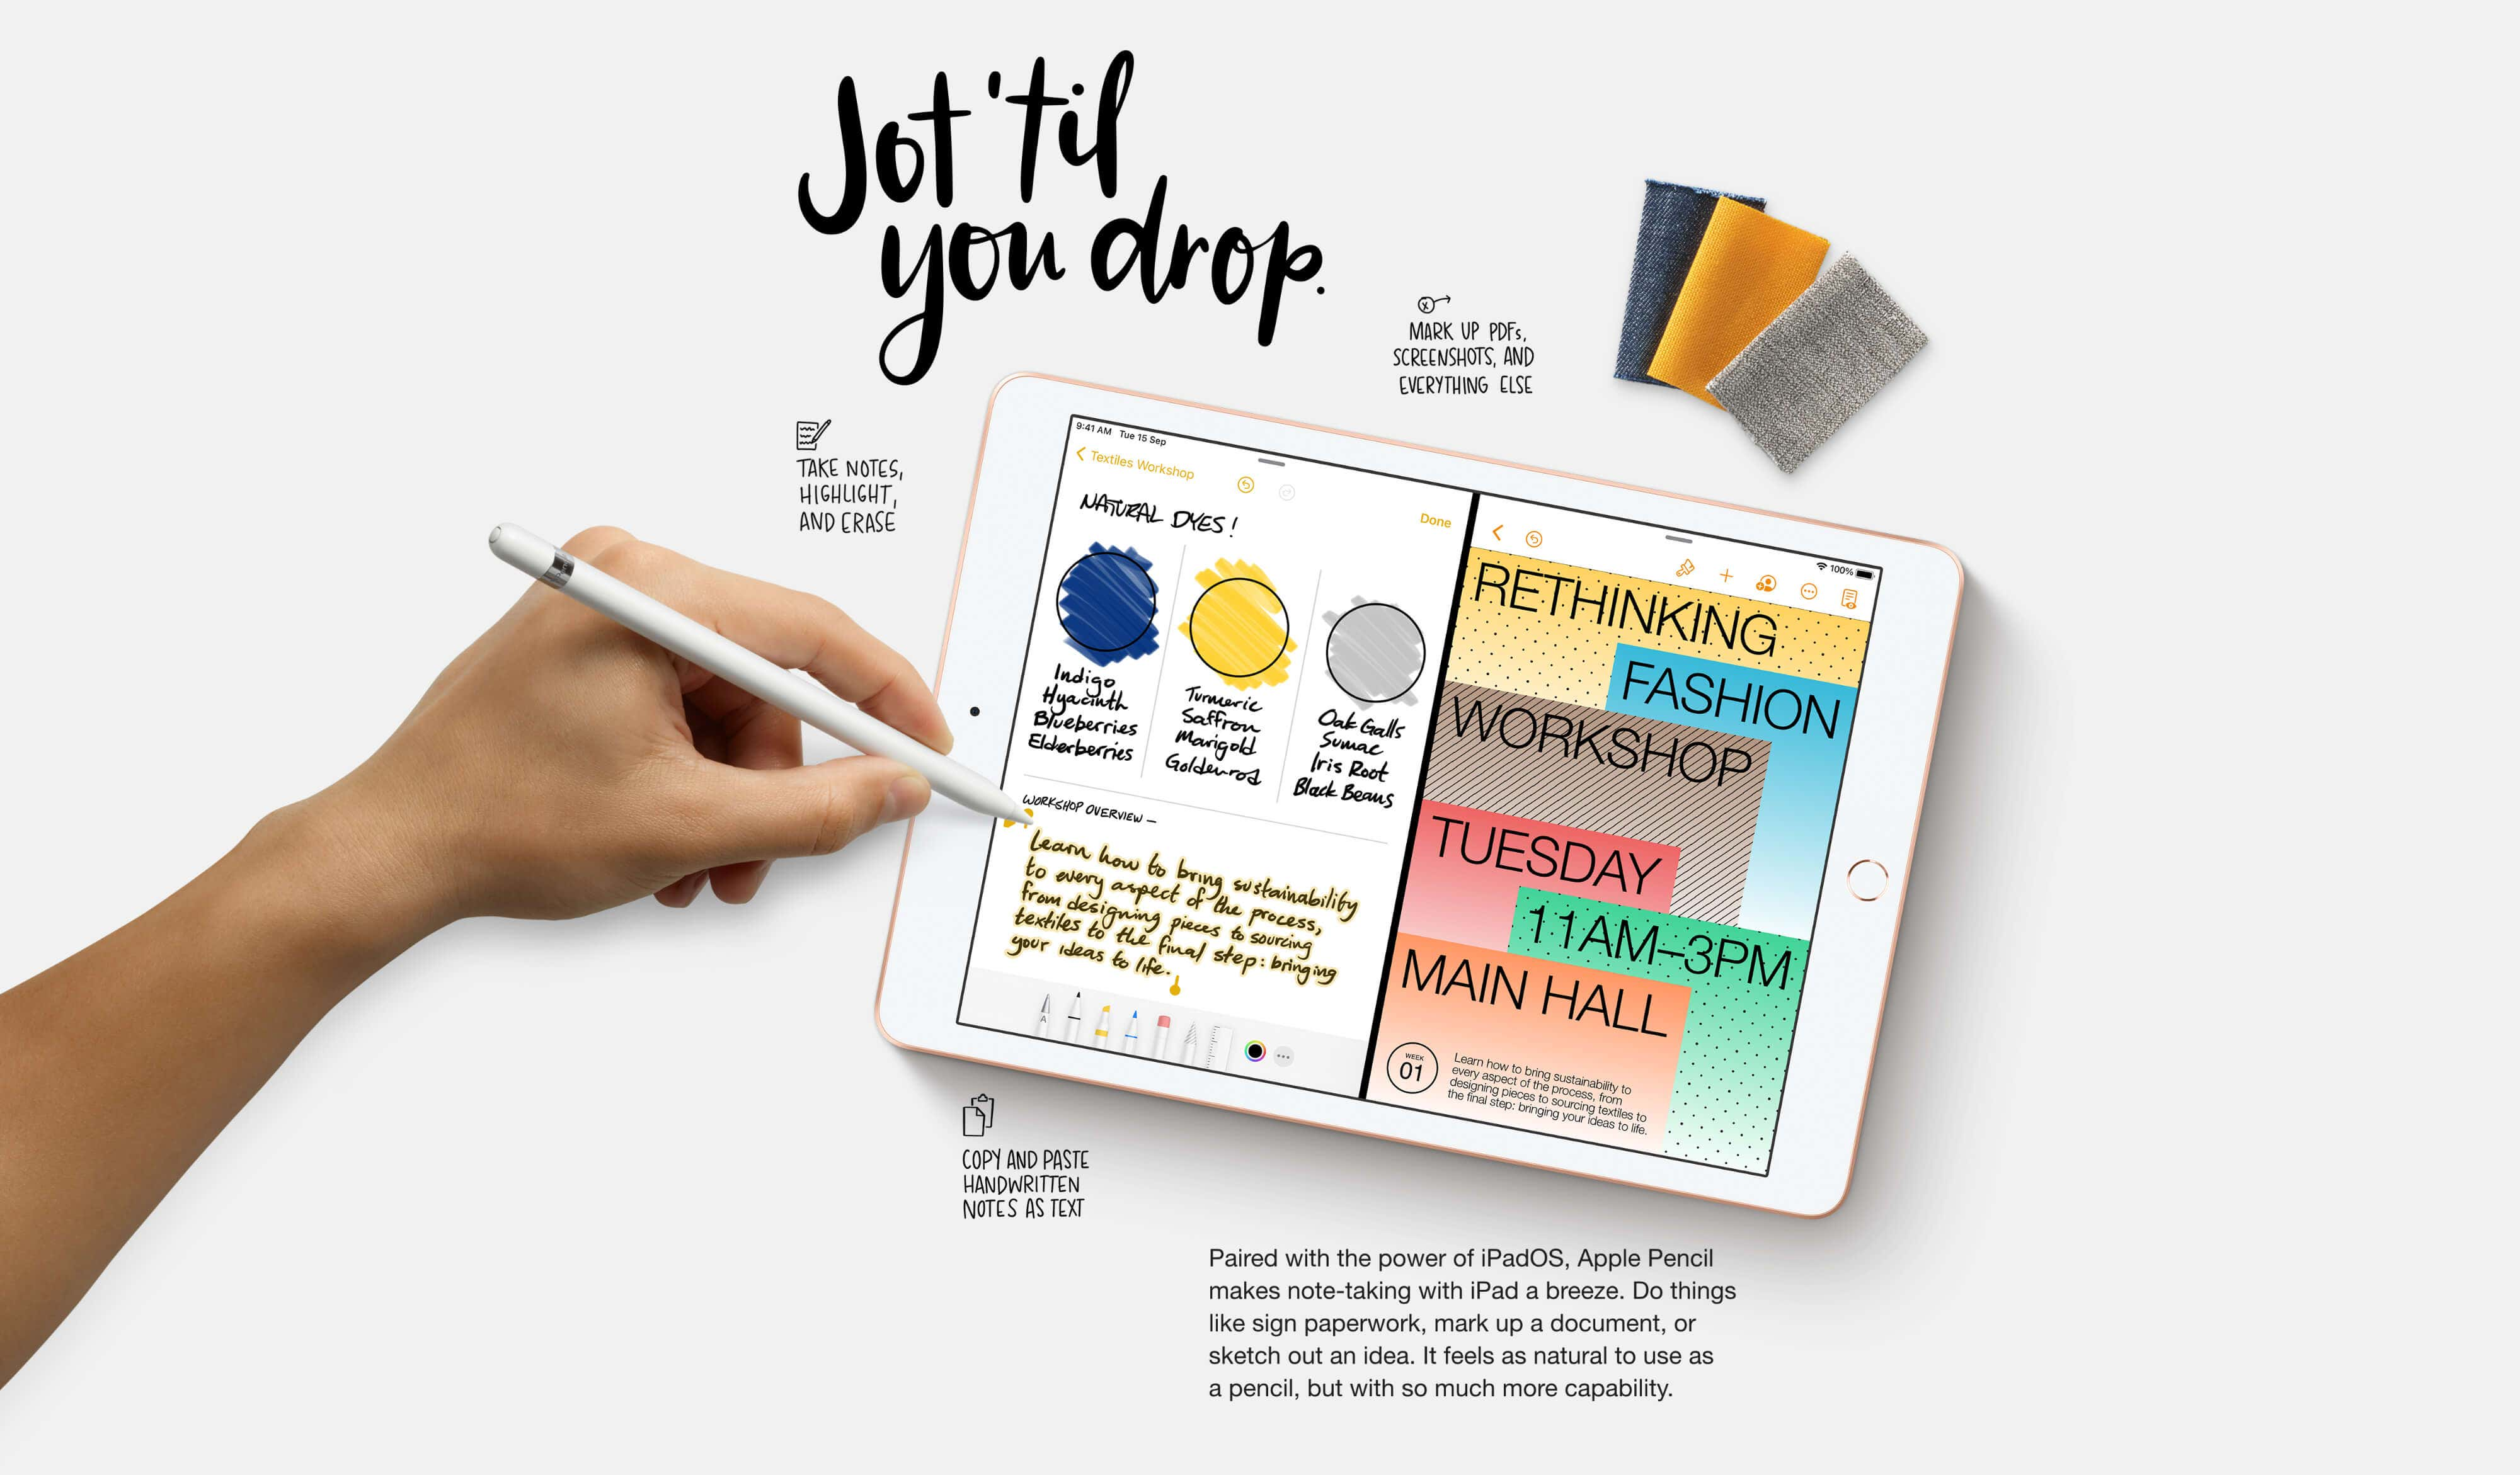 iPad 8th Generation - Paired with the power of iPad OS, Apple Pencil takes note-taking with iPad a breeze.